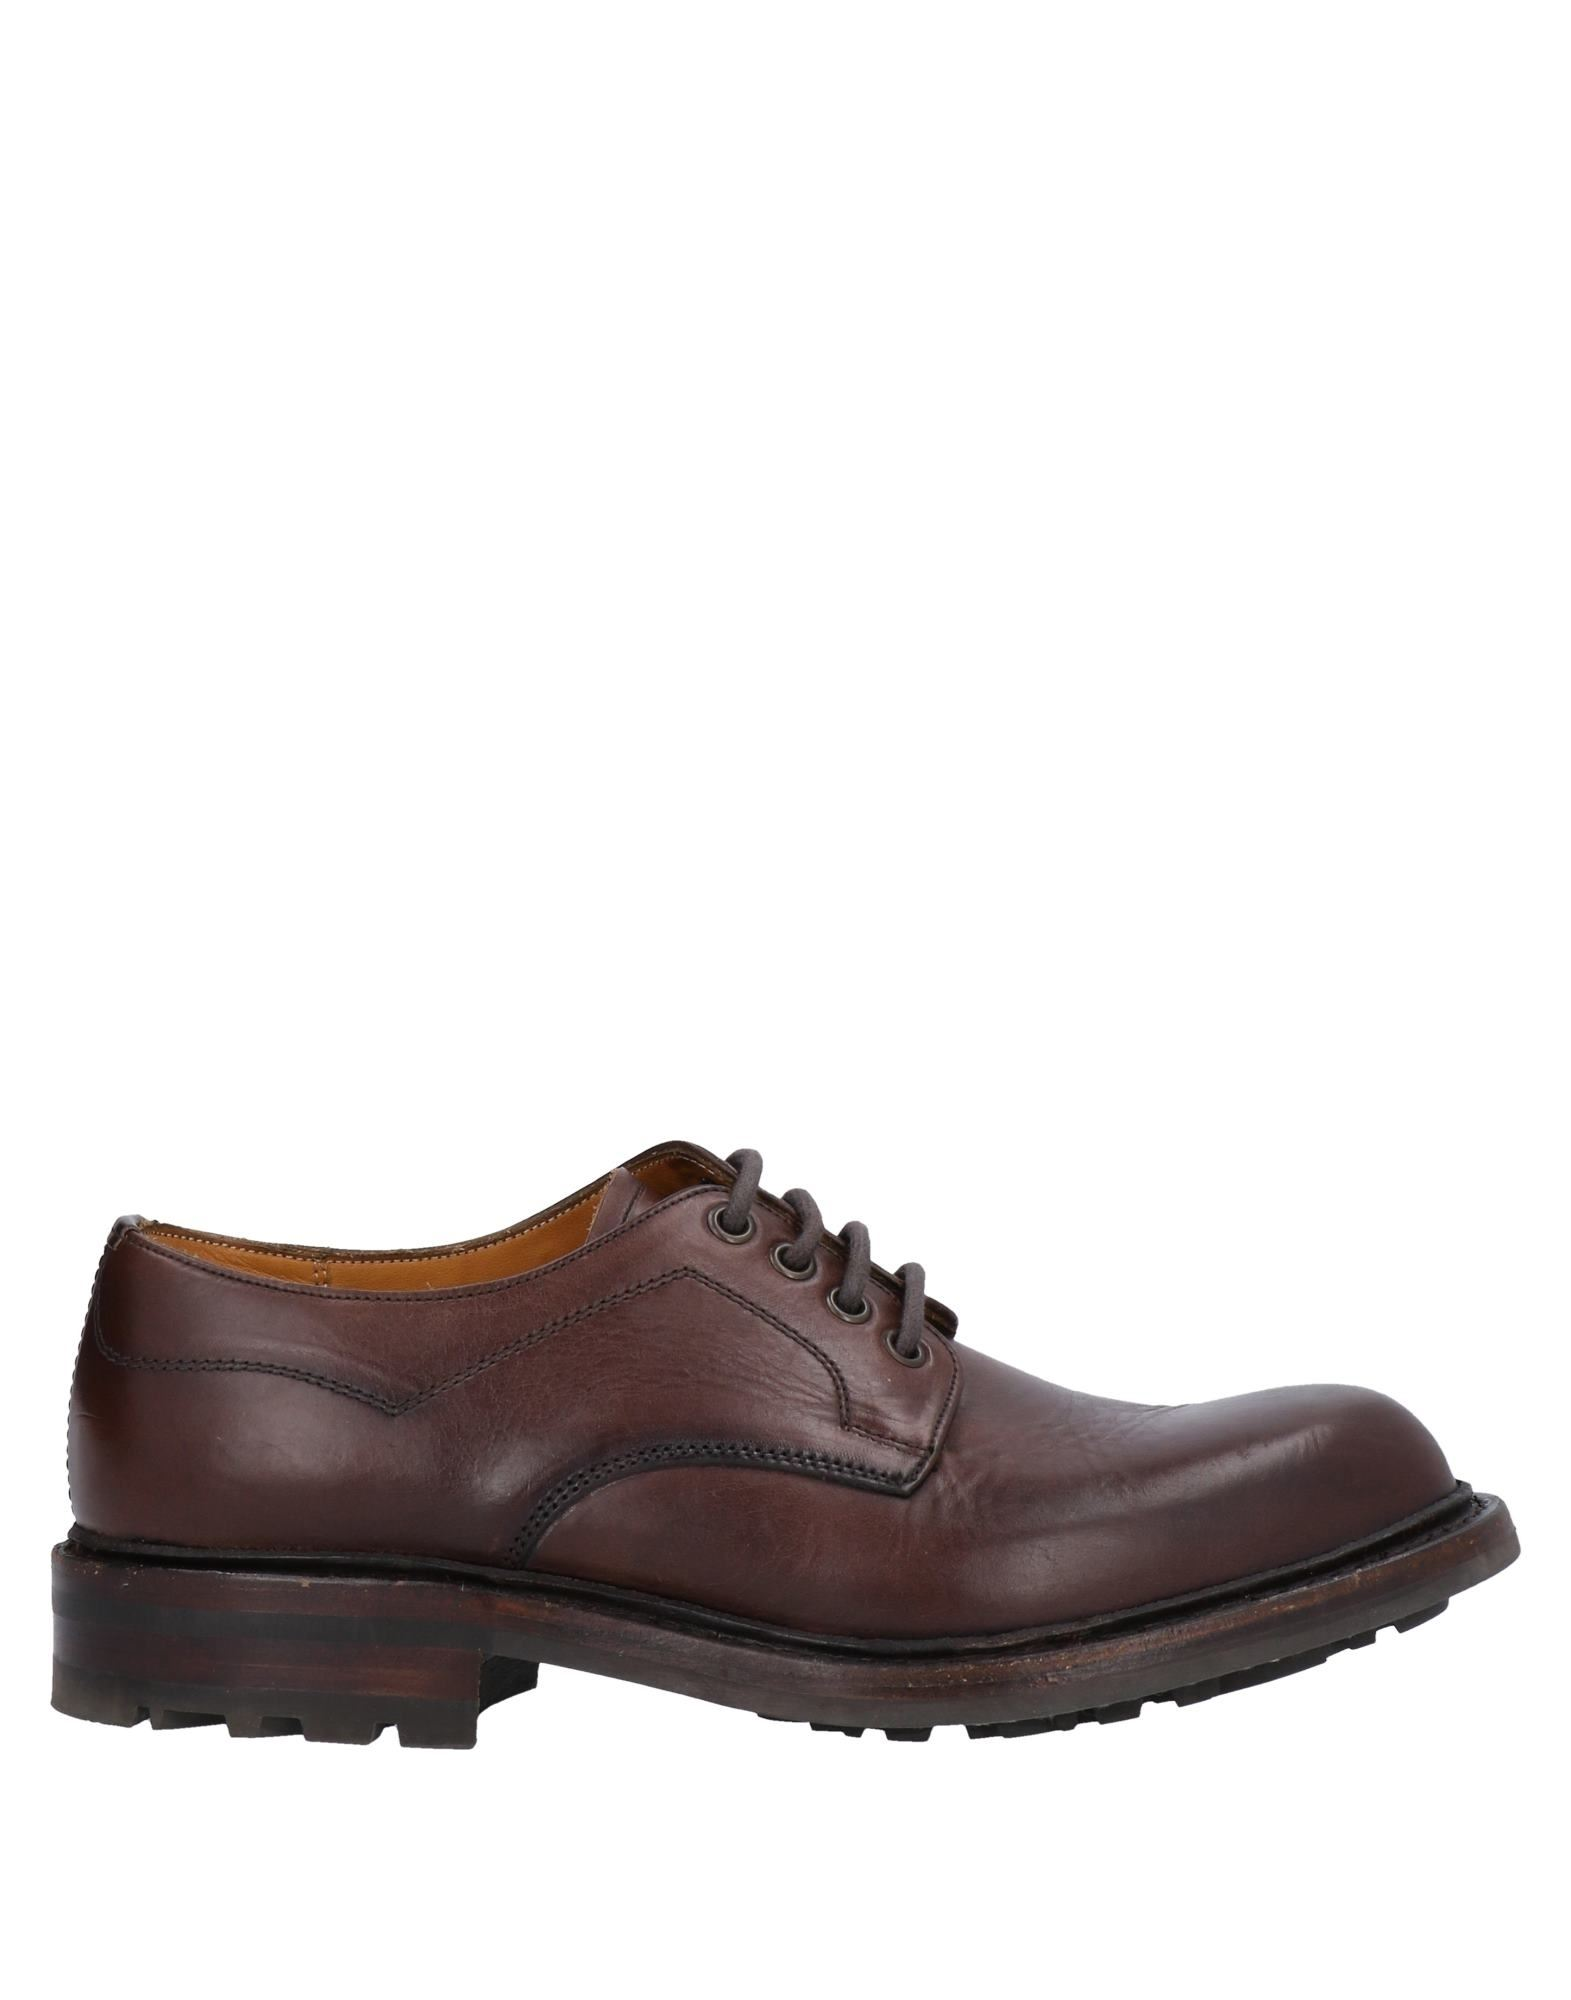 JOSEPH CHEANEY & SONS Lace-up shoes - Item 17053241